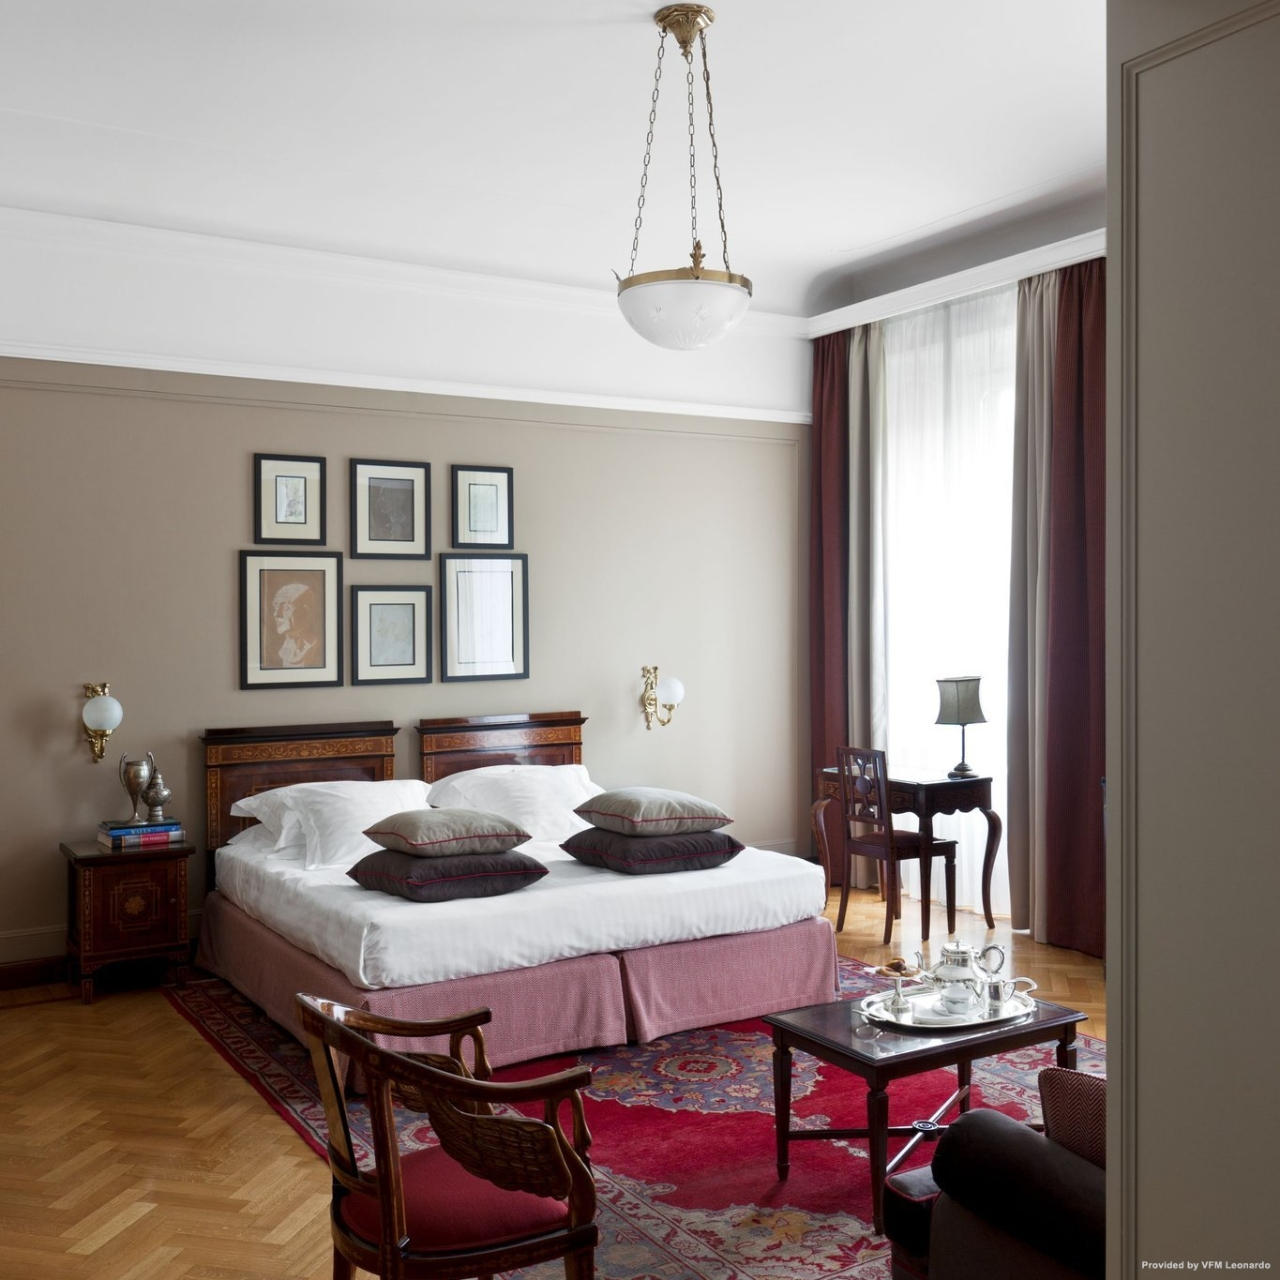 Grand Hotel Et De Milan Italy At Hrs With Free Services